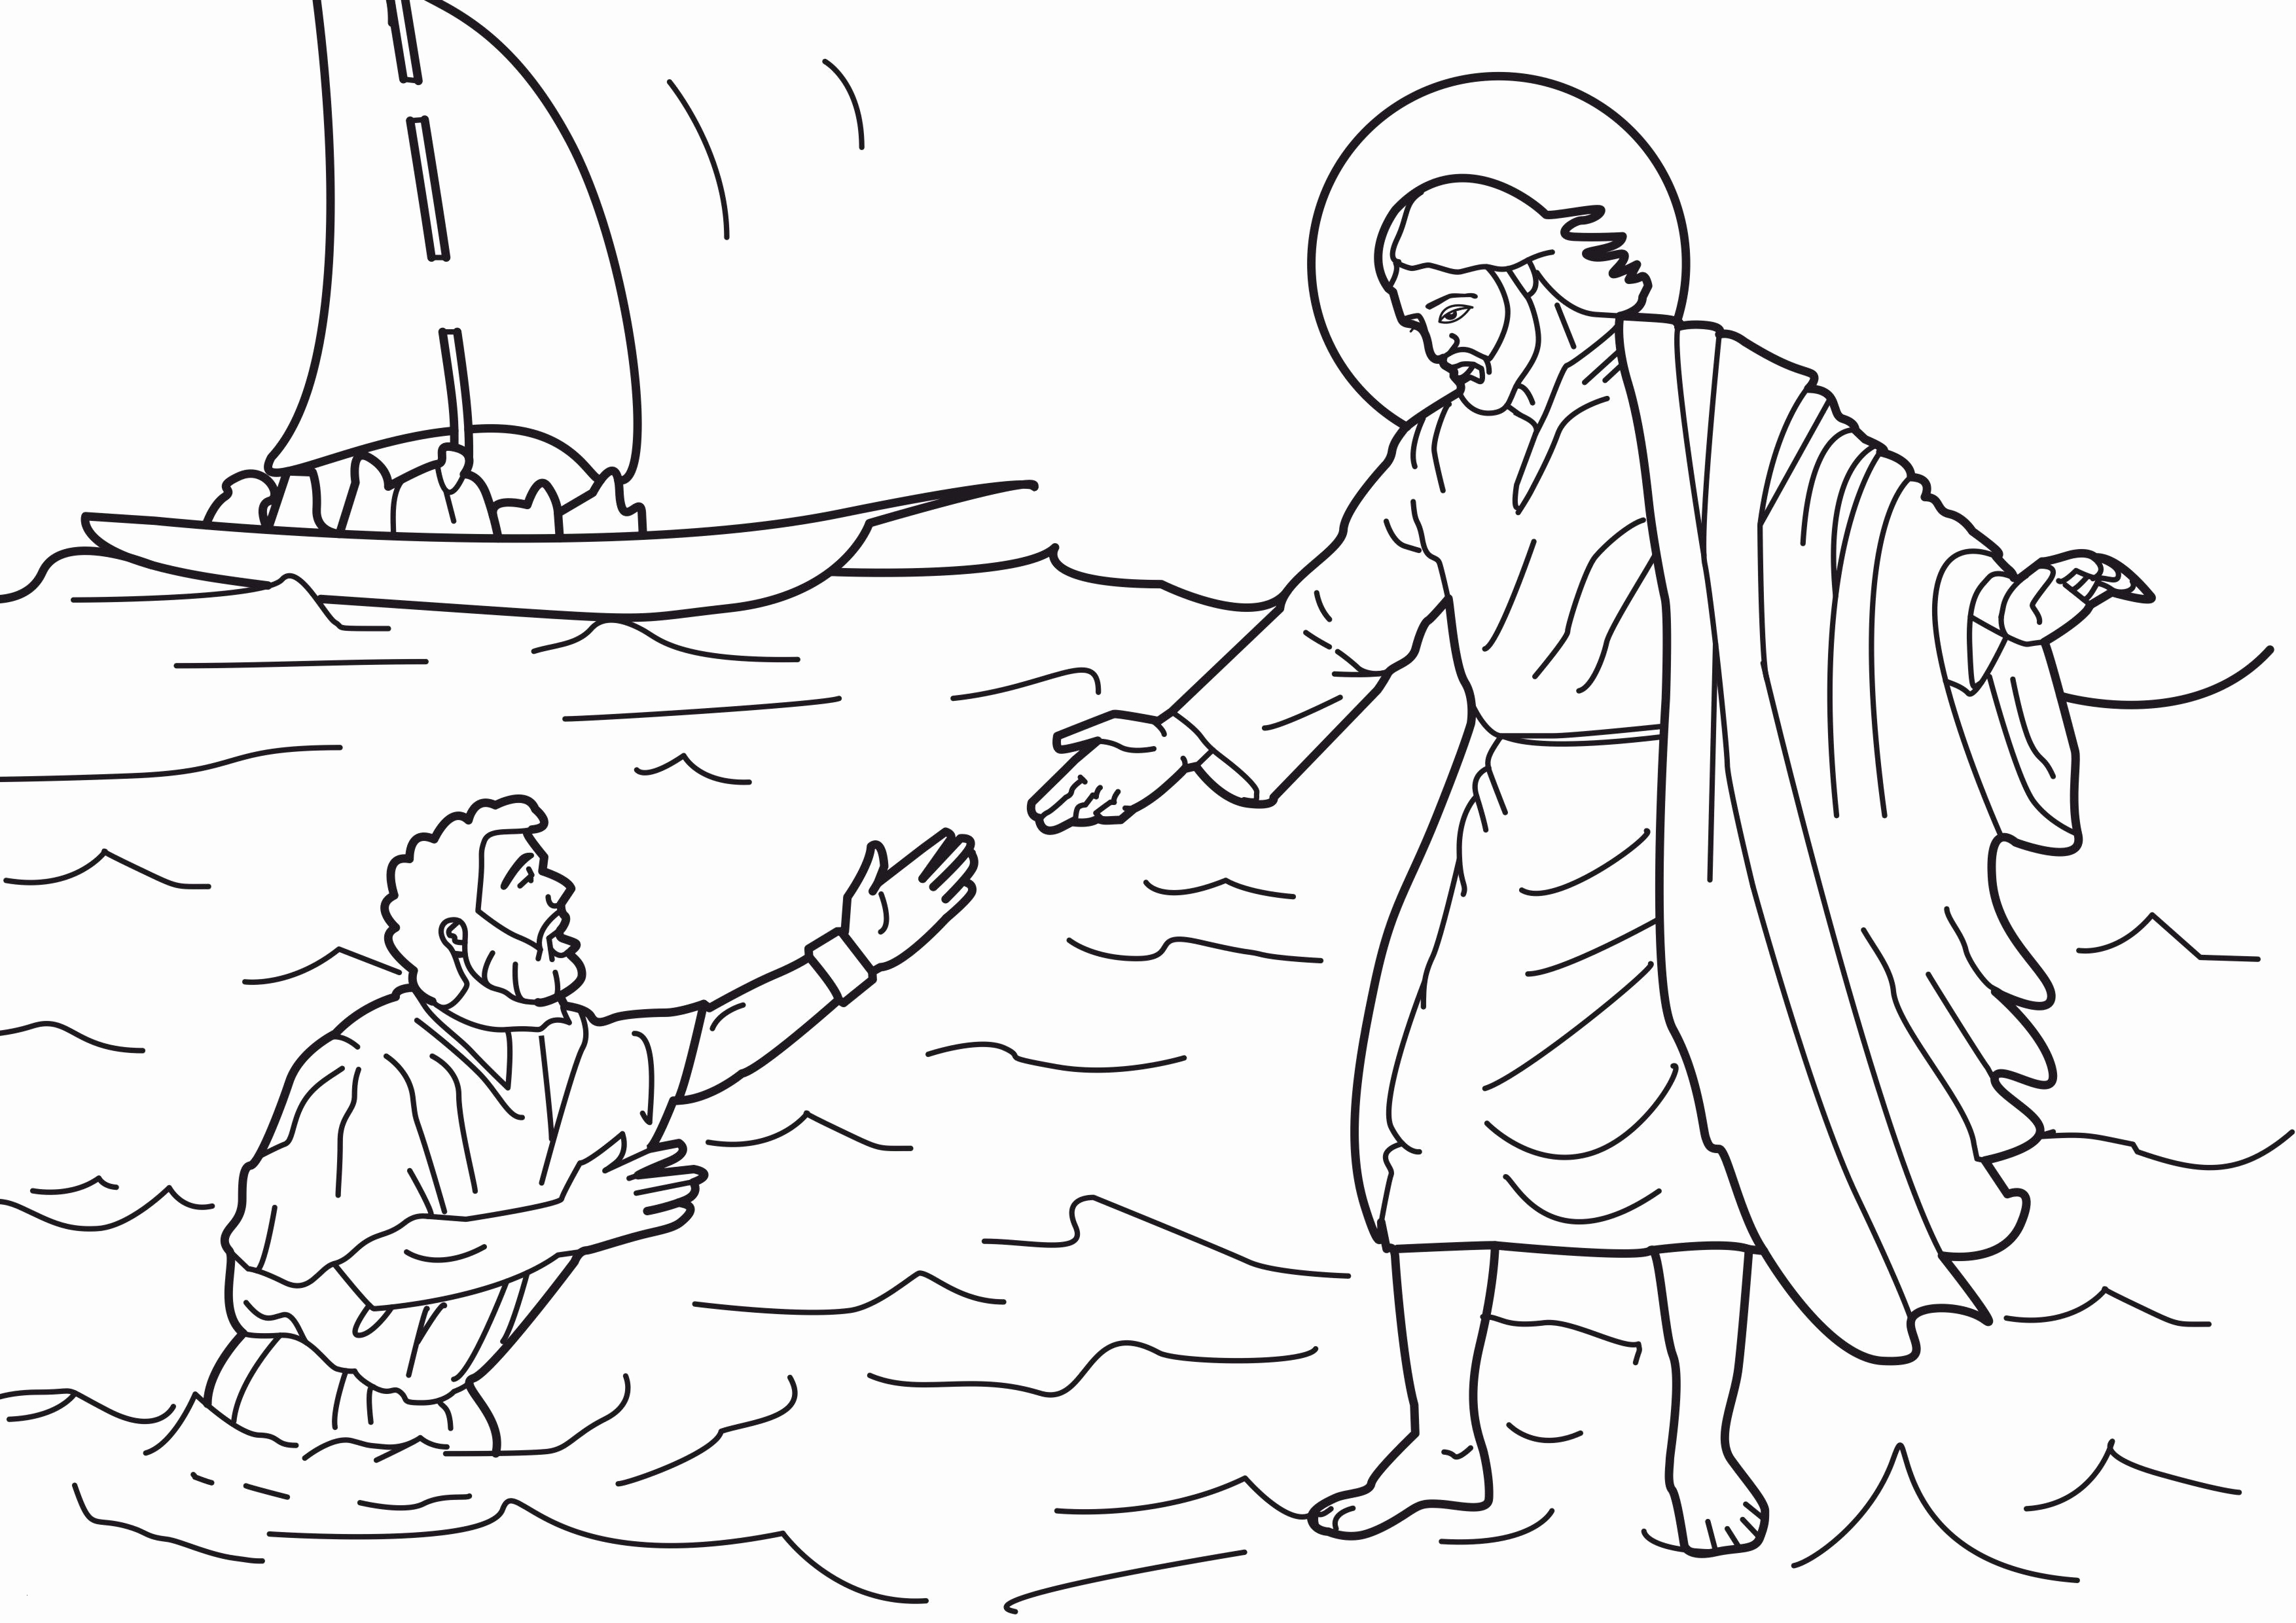 25 Jesus Walks On Water Coloring Pages Gallery Coloring Sheets